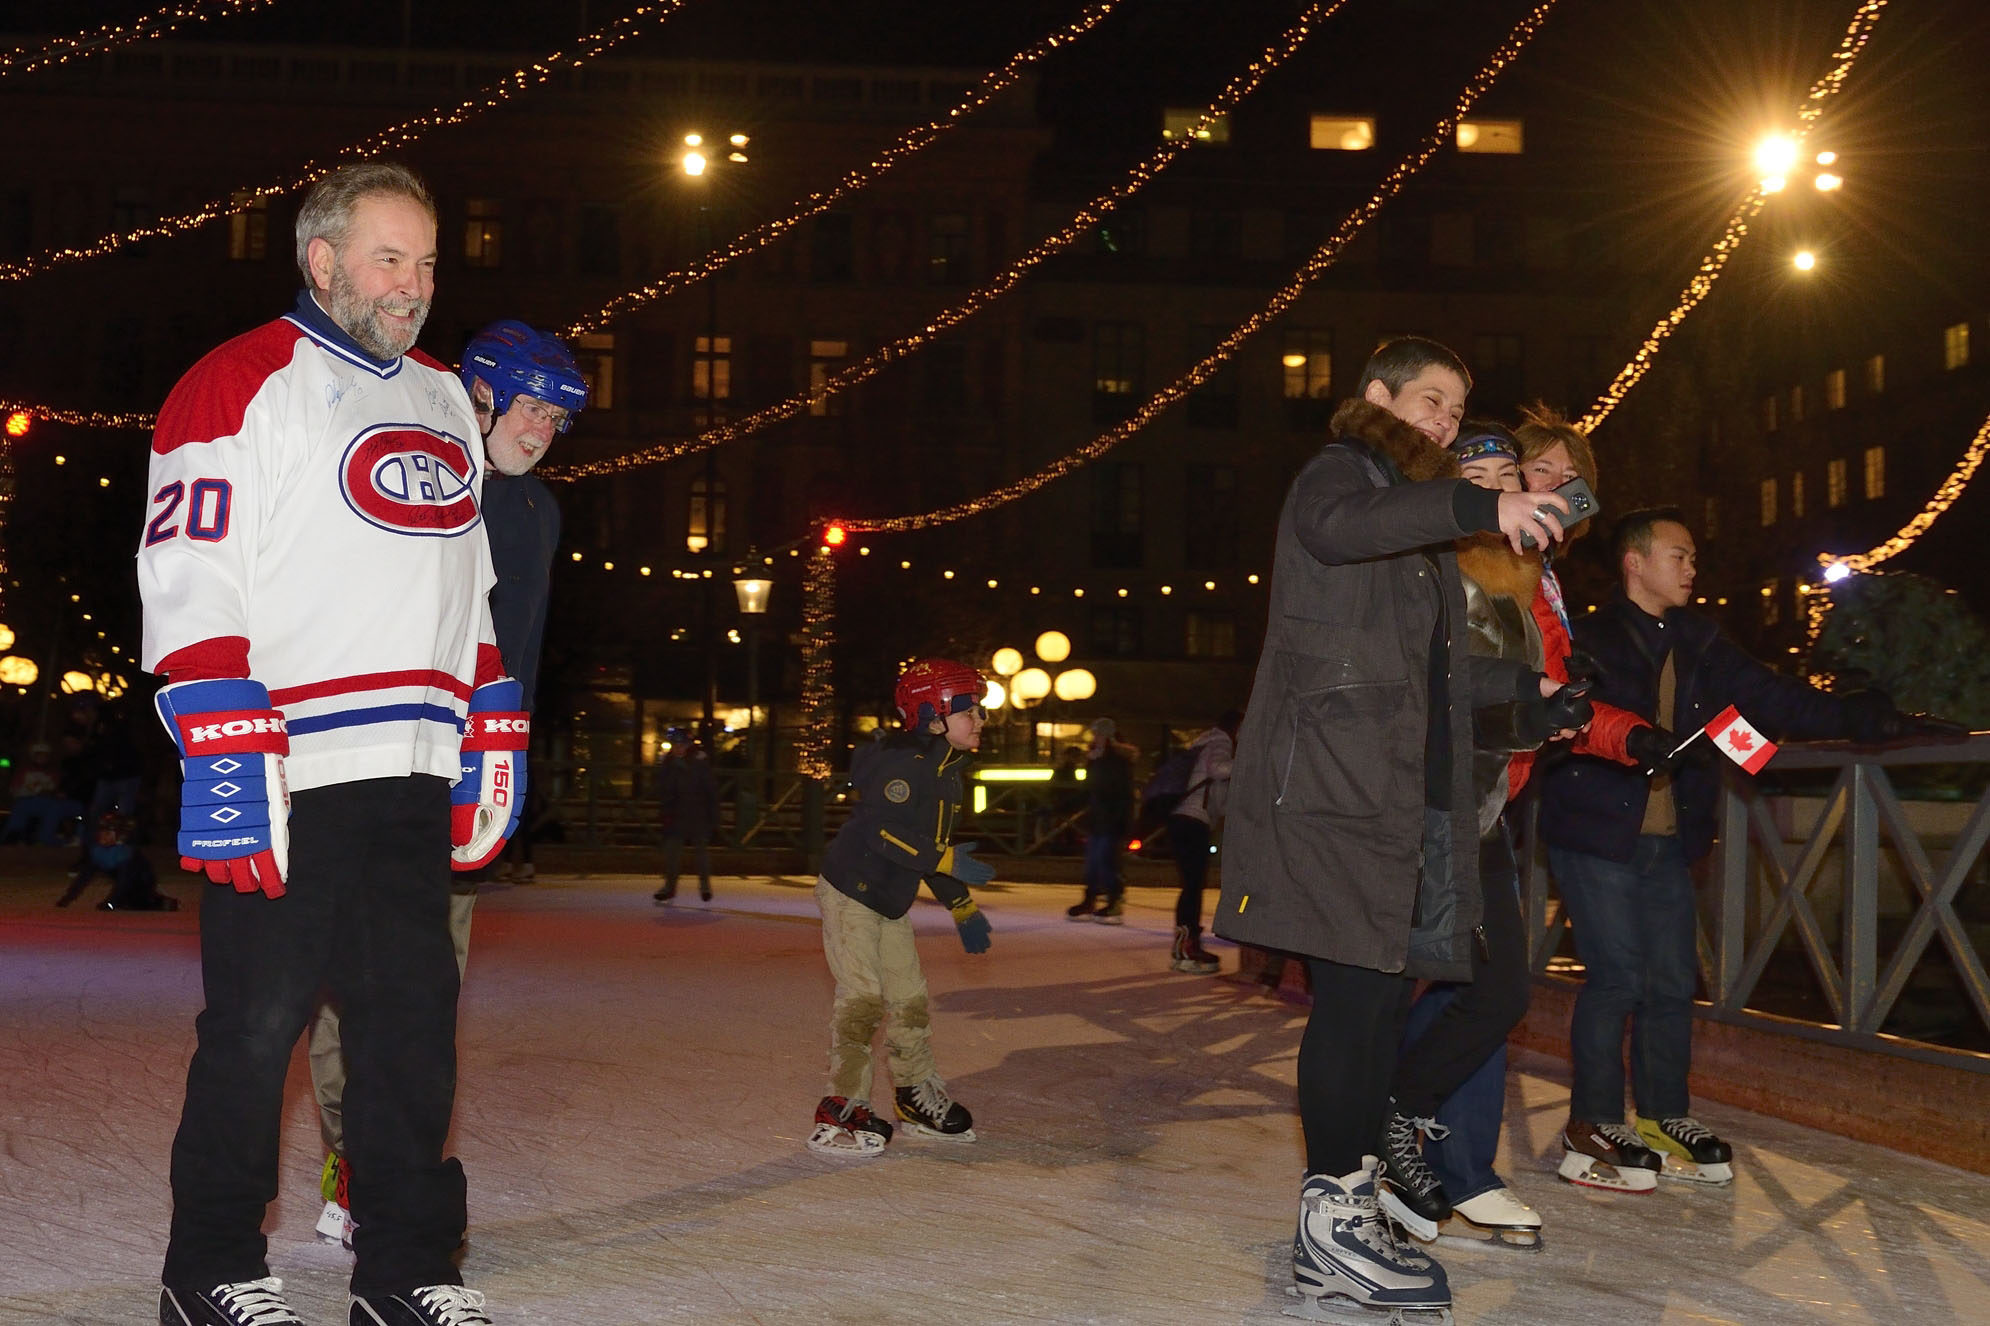 Canadian delegate and Leader of the New Democratic party of Canada Thomas Mulcair joined in the fun on skates.